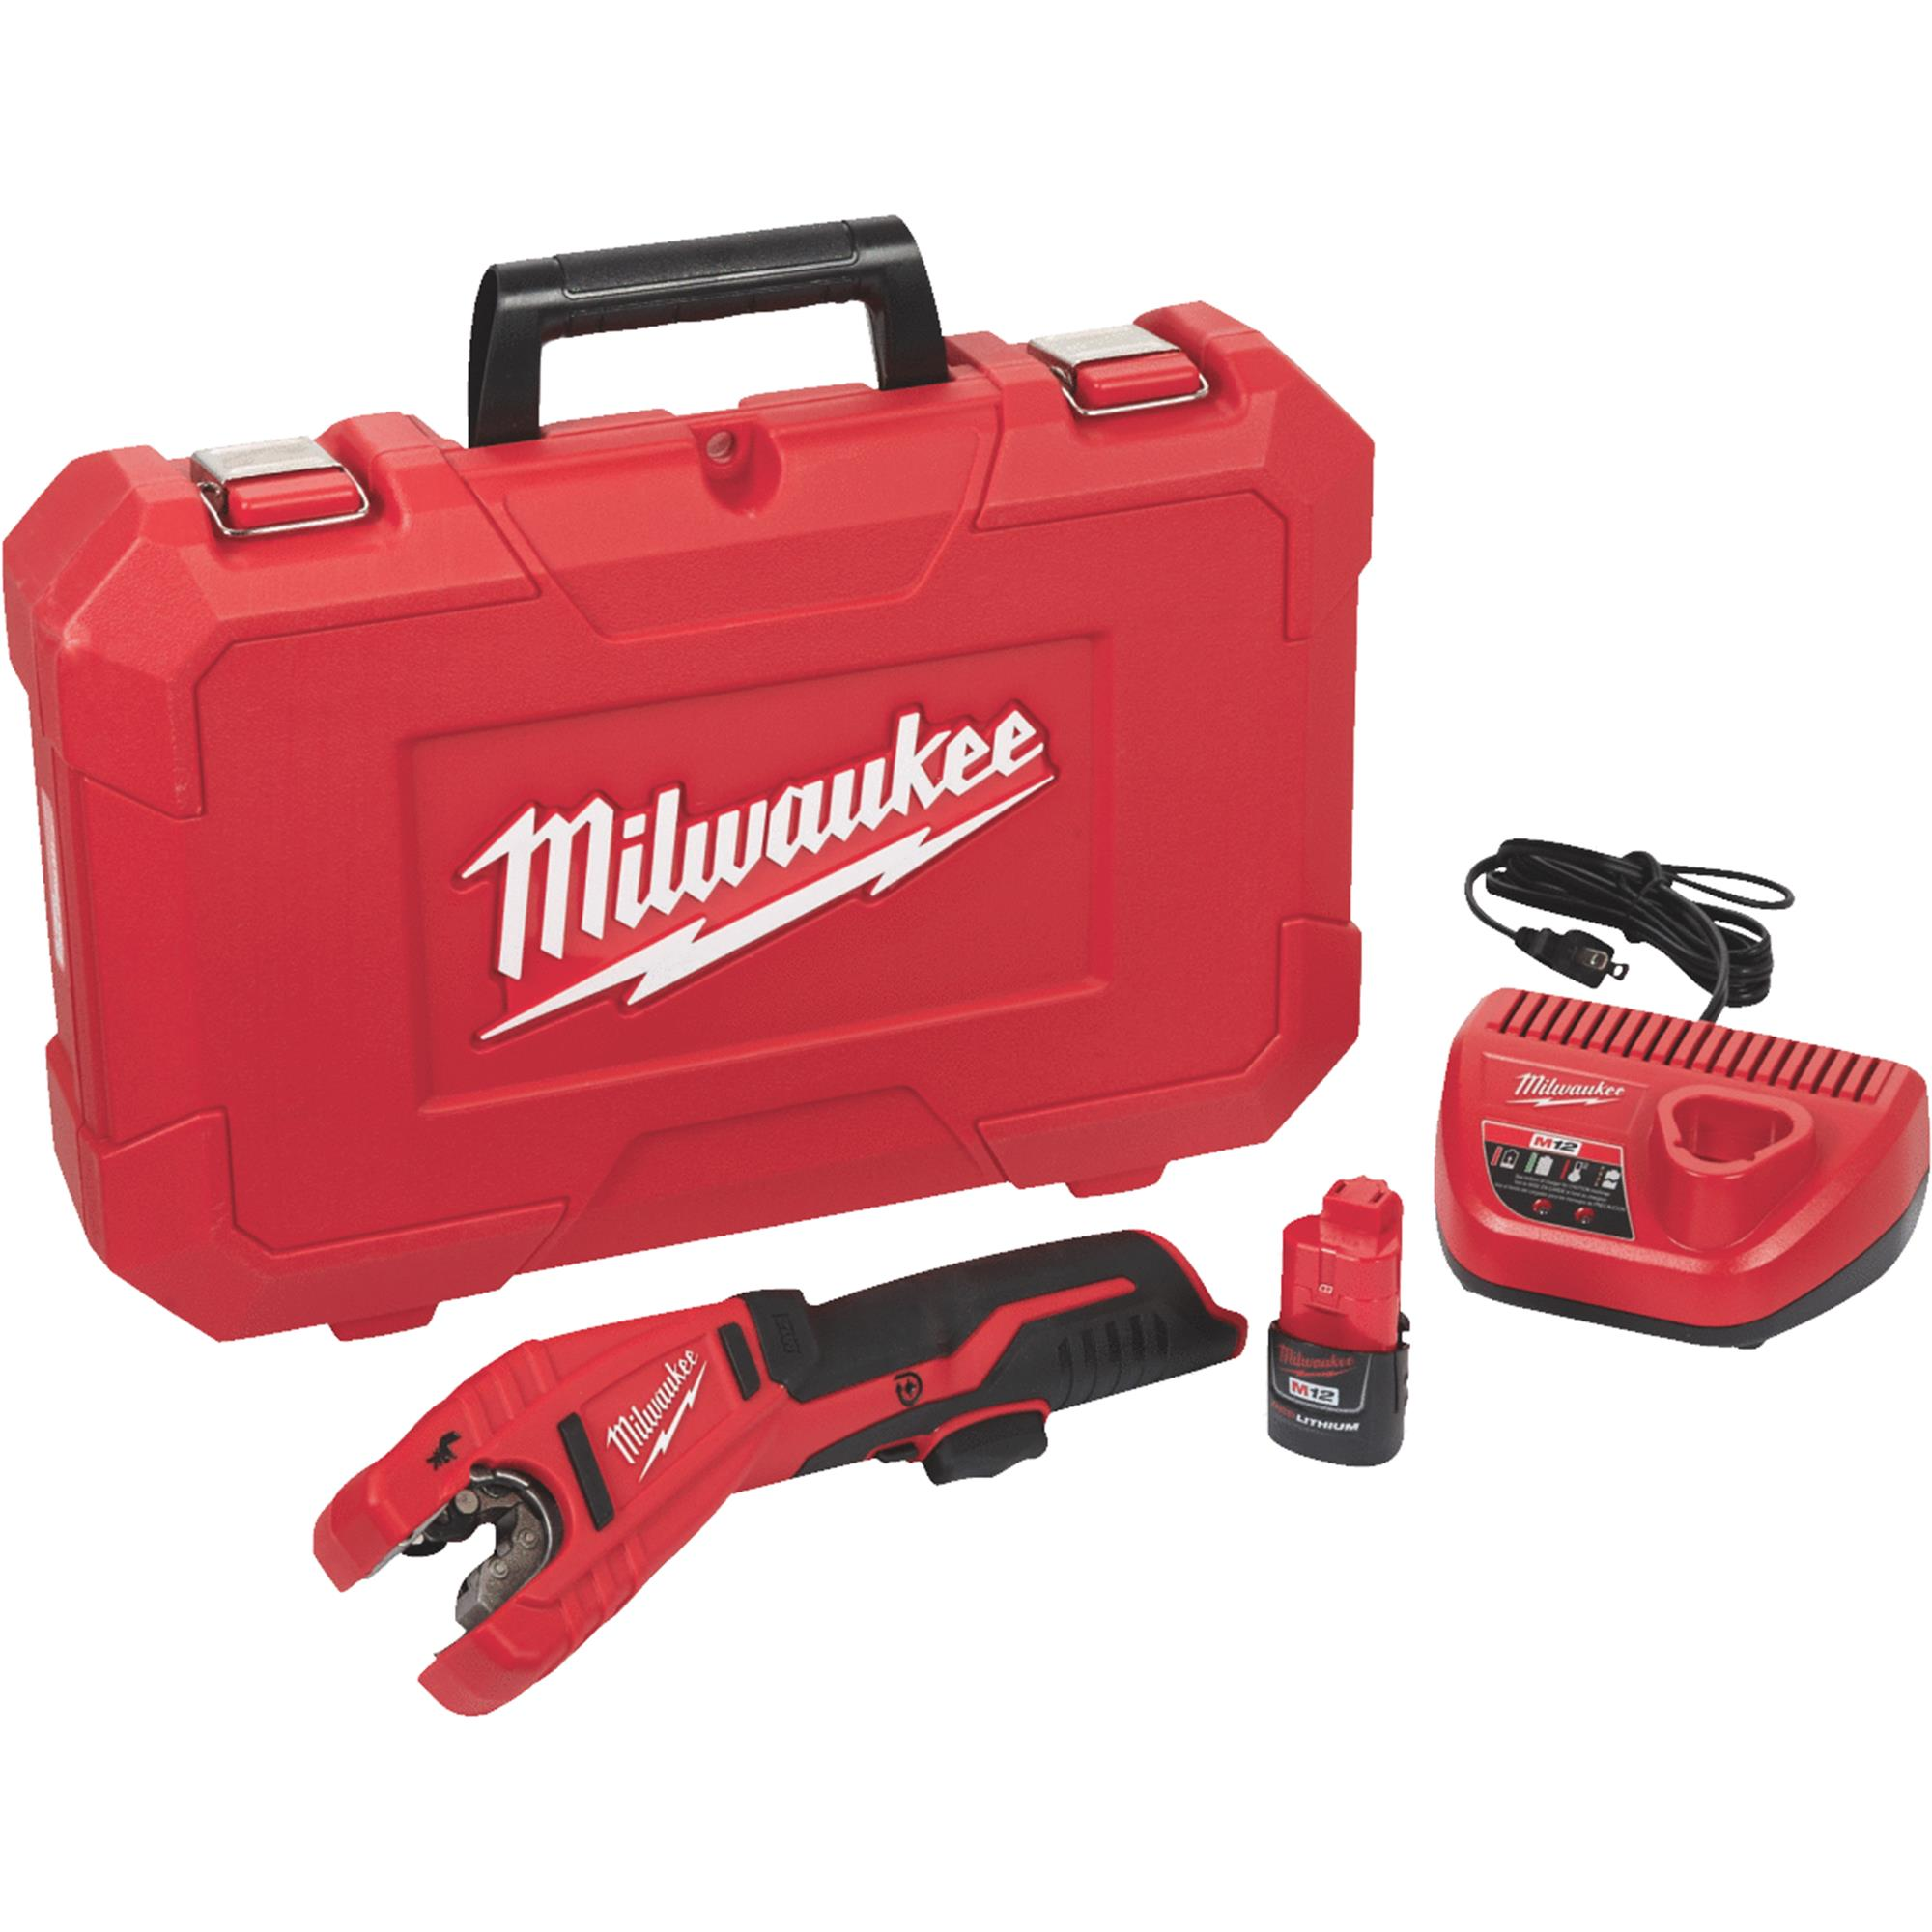 Milwaukee M12 Lithium-Ion Cordless Pipe Cutter